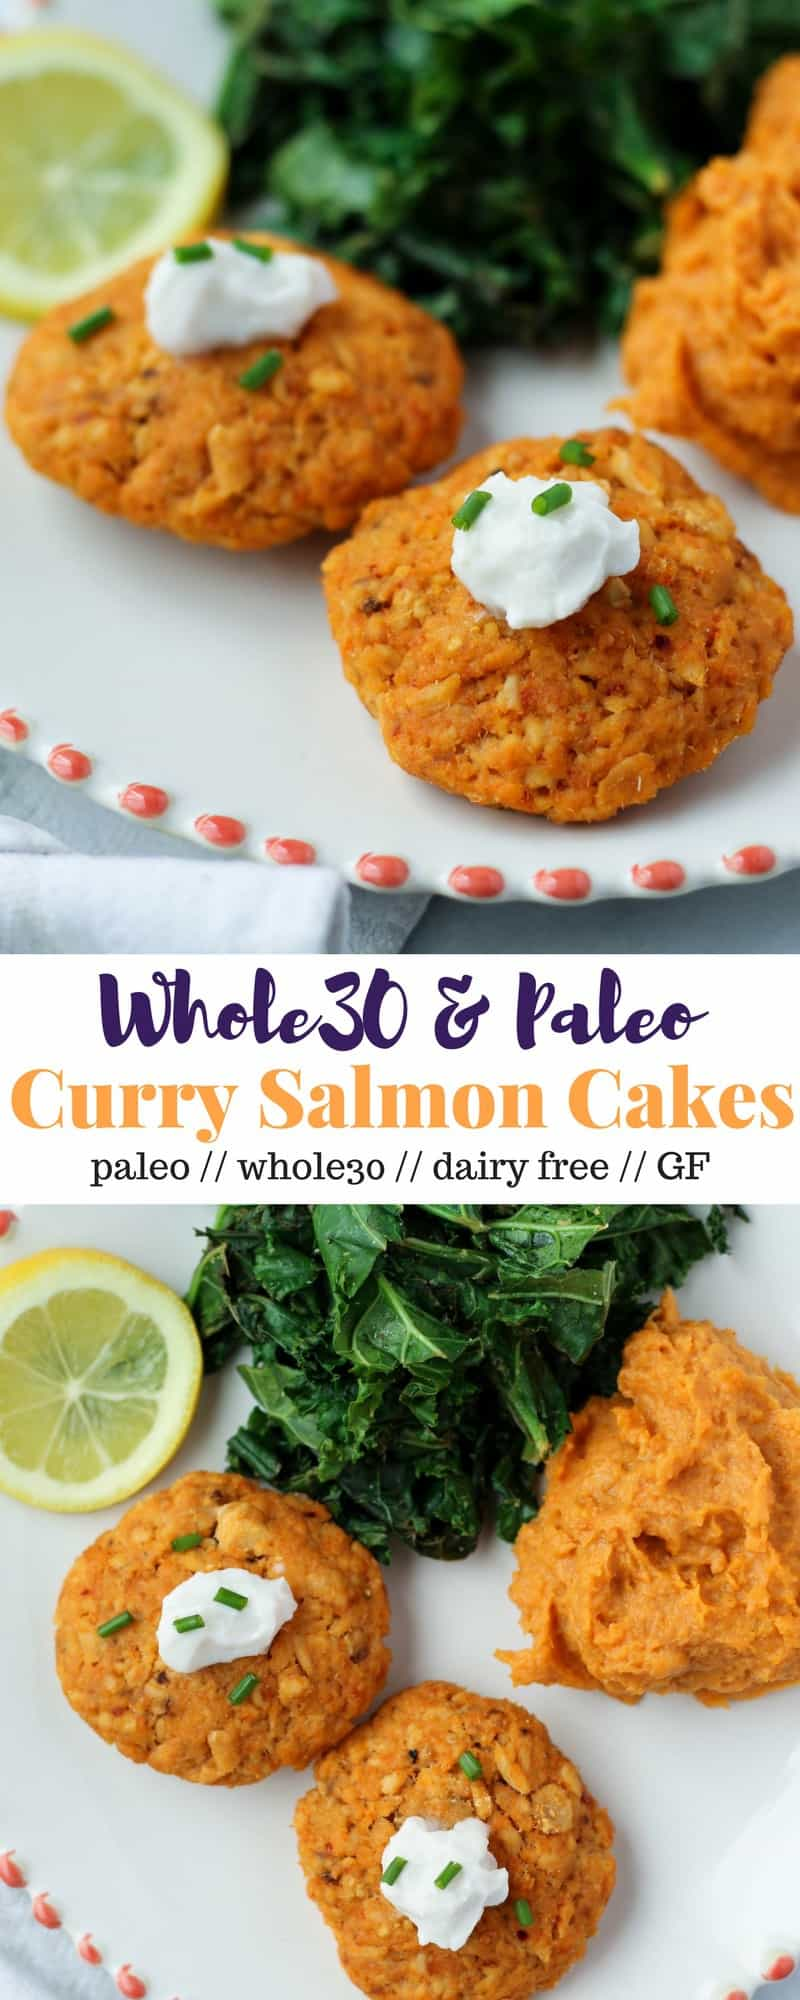 These Curry Salmon Cakes come together in 15 minutes and make the prefect quick & healthy meal or meal prep dish, and are paleo and Whole30 approved - Eat the Gains